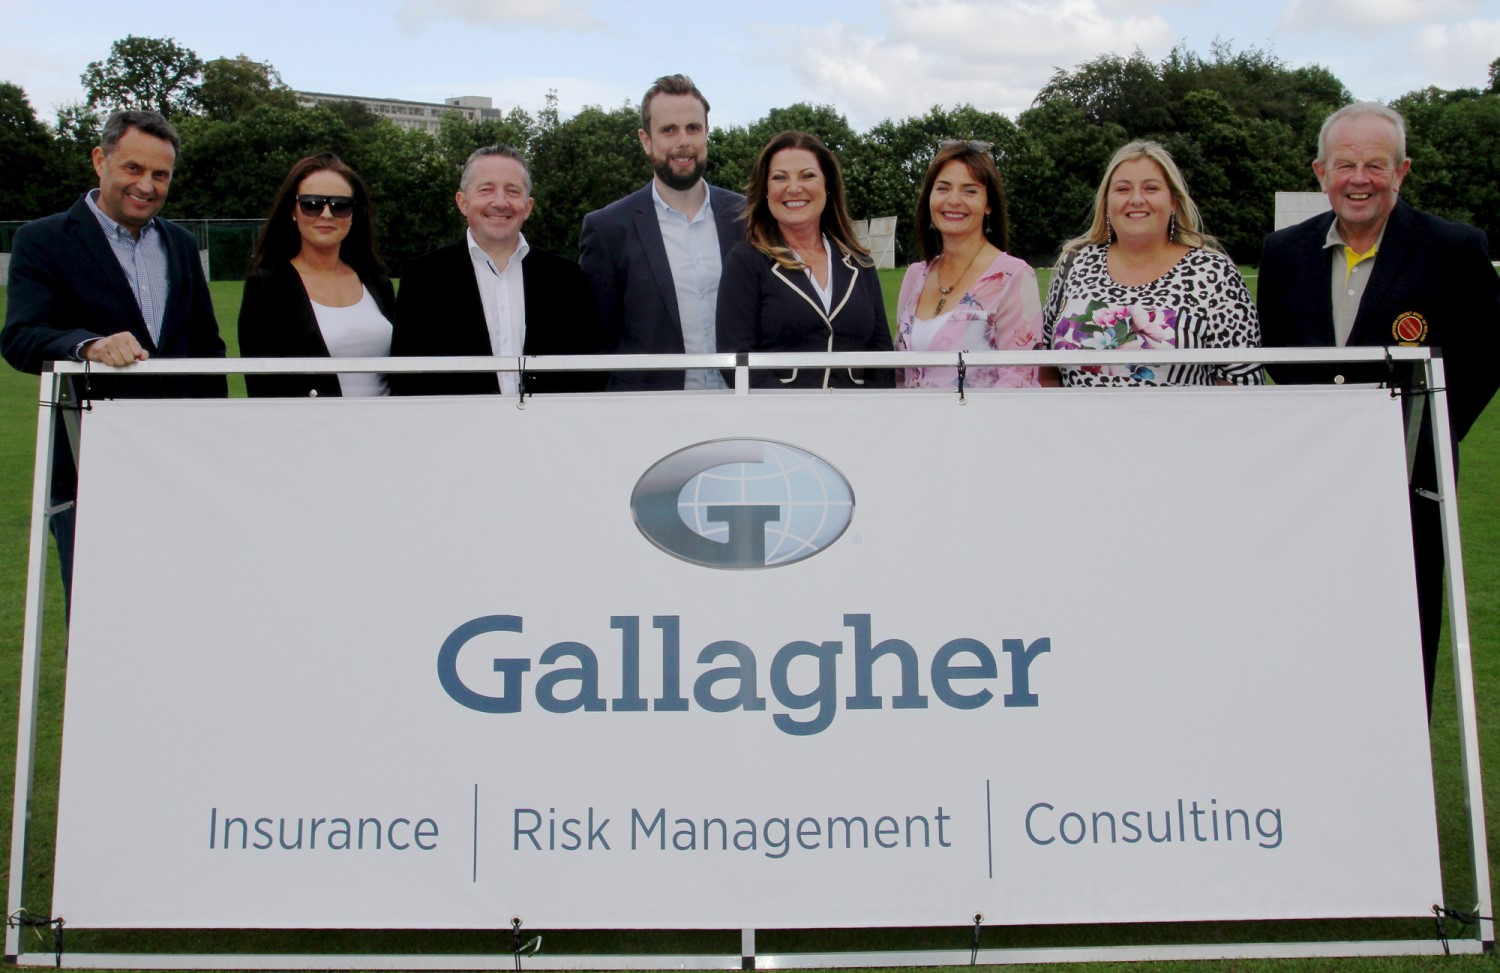 Gallaghers' representatives at today's match